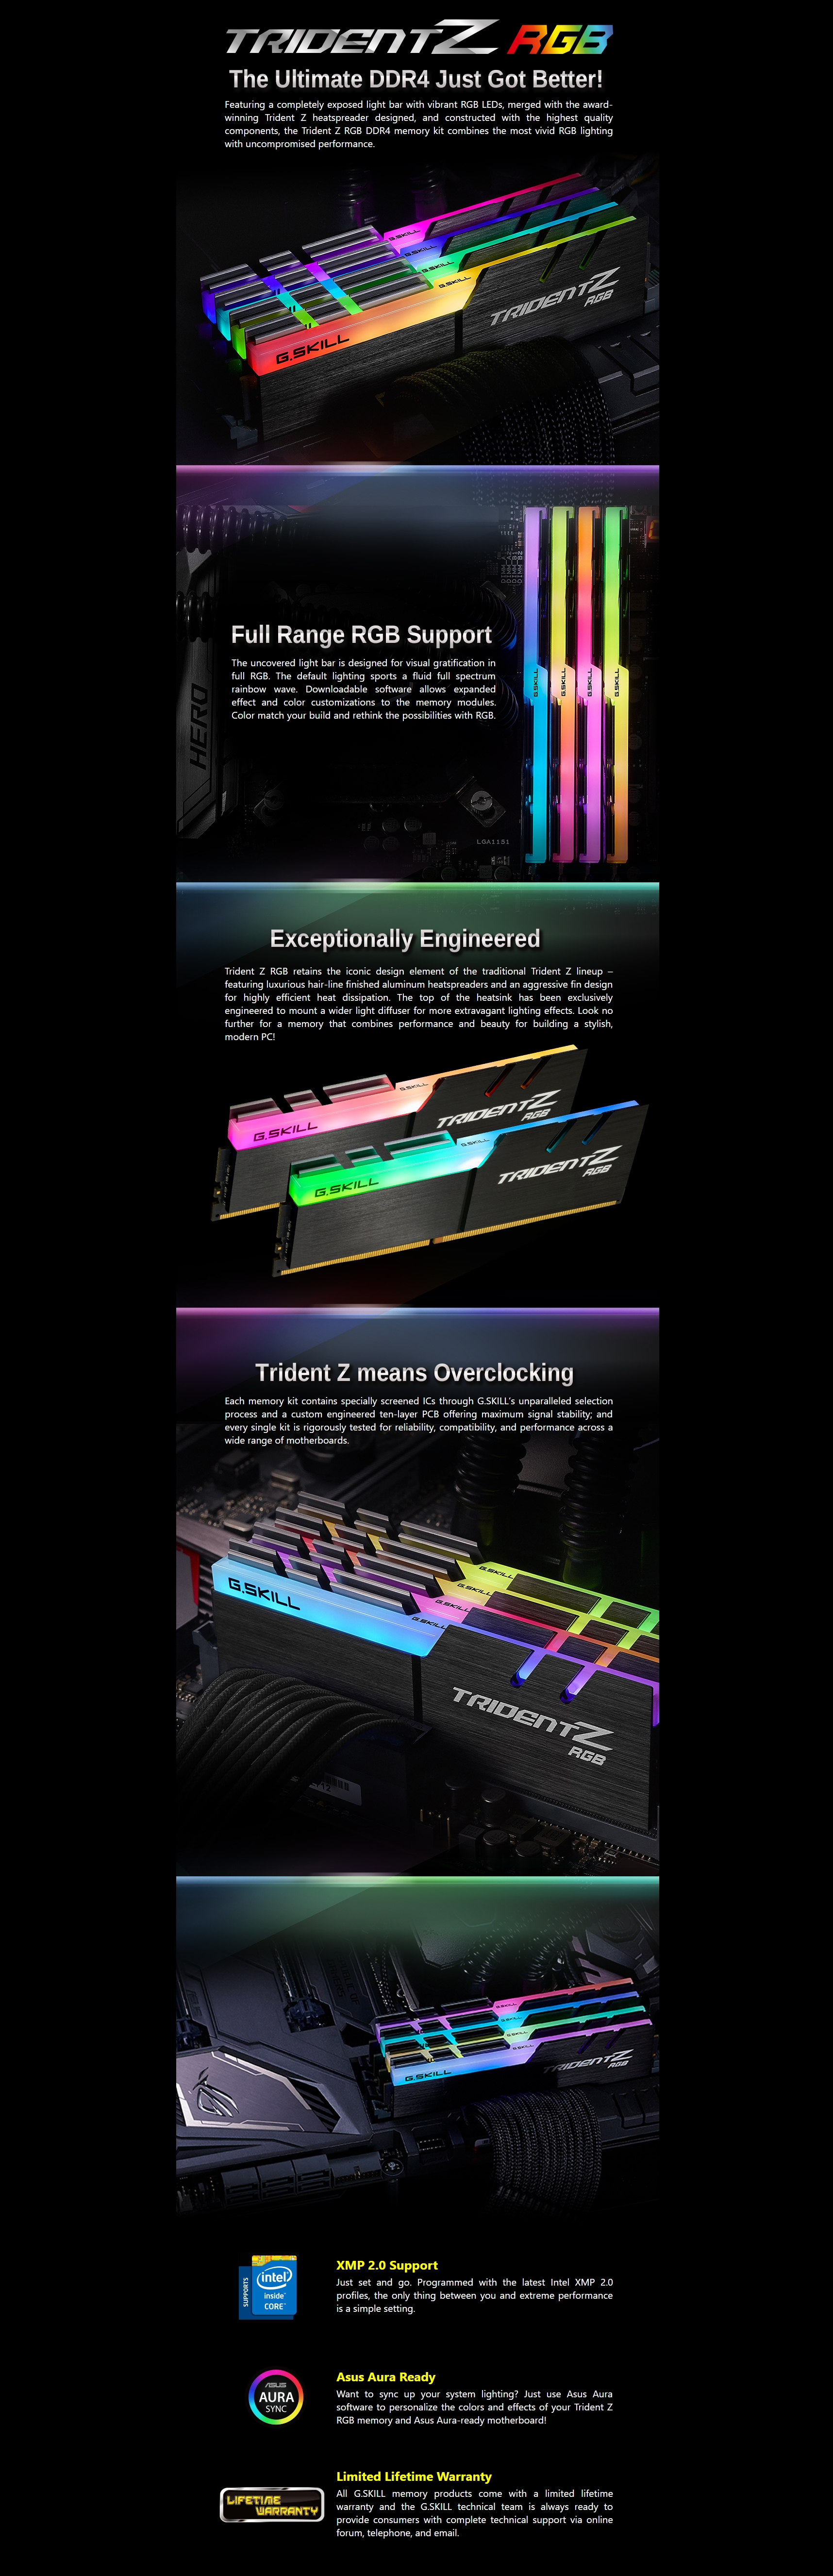 A large marketing image providing additional information about the product G.Skill 64GB Kit (2x32GB) DDR4 Trident Z RGB C18 2666Mhz - Additional alt info not provided